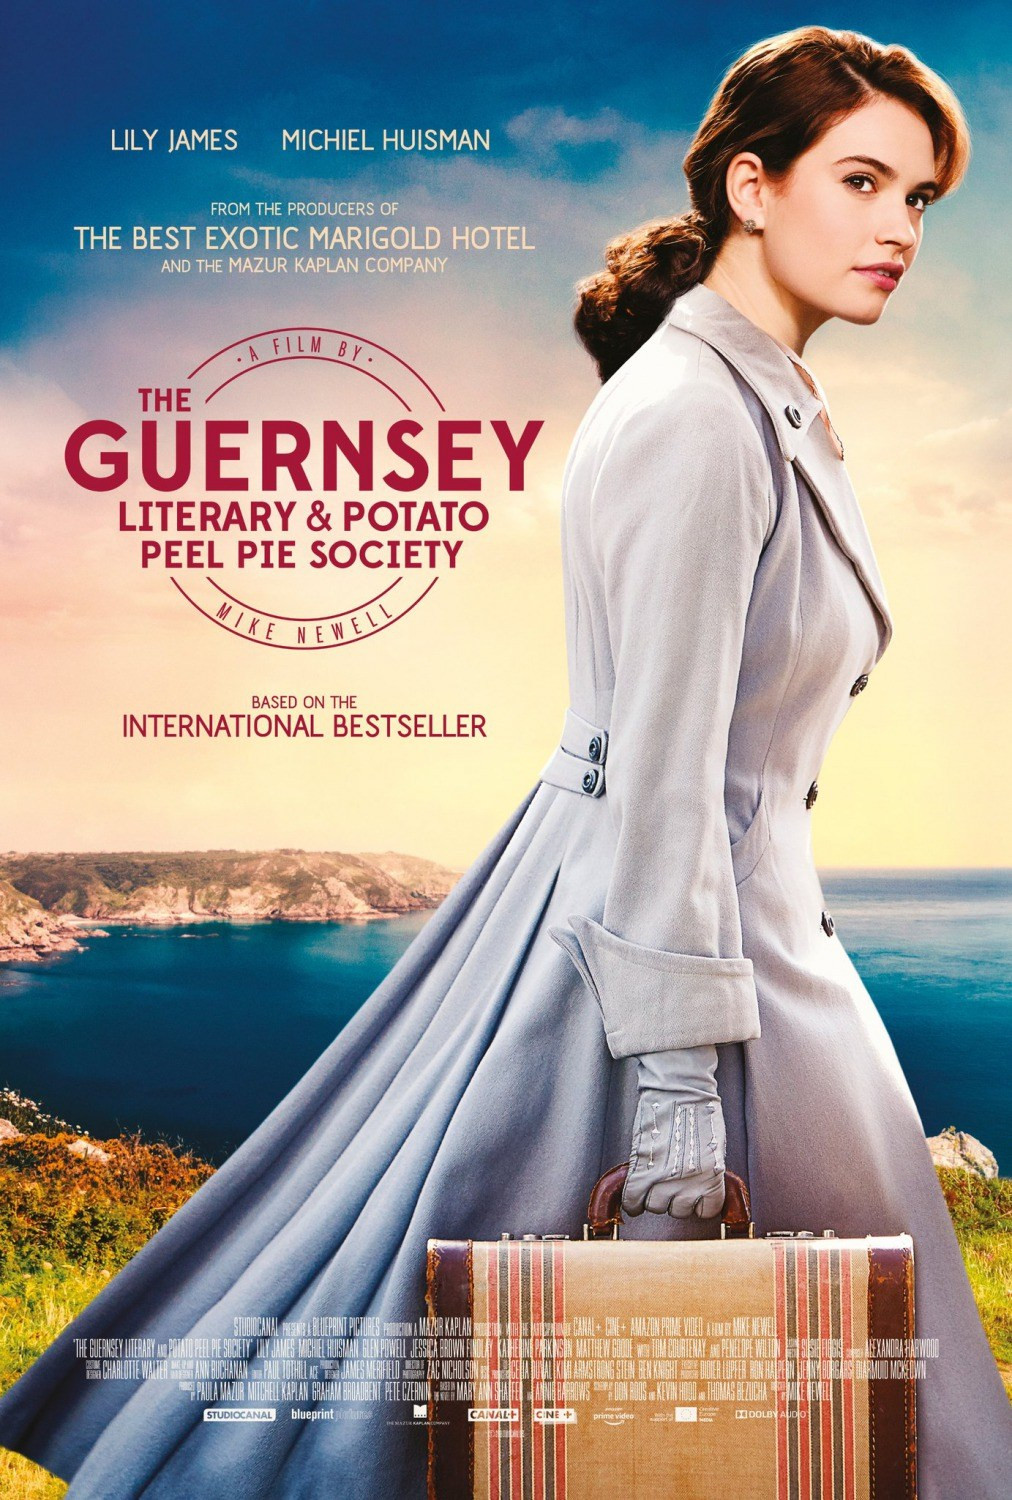 The Guernsey Literary And Potato Peel Society  The Guernsey Literary and Potato Peel Pie Society Teaser